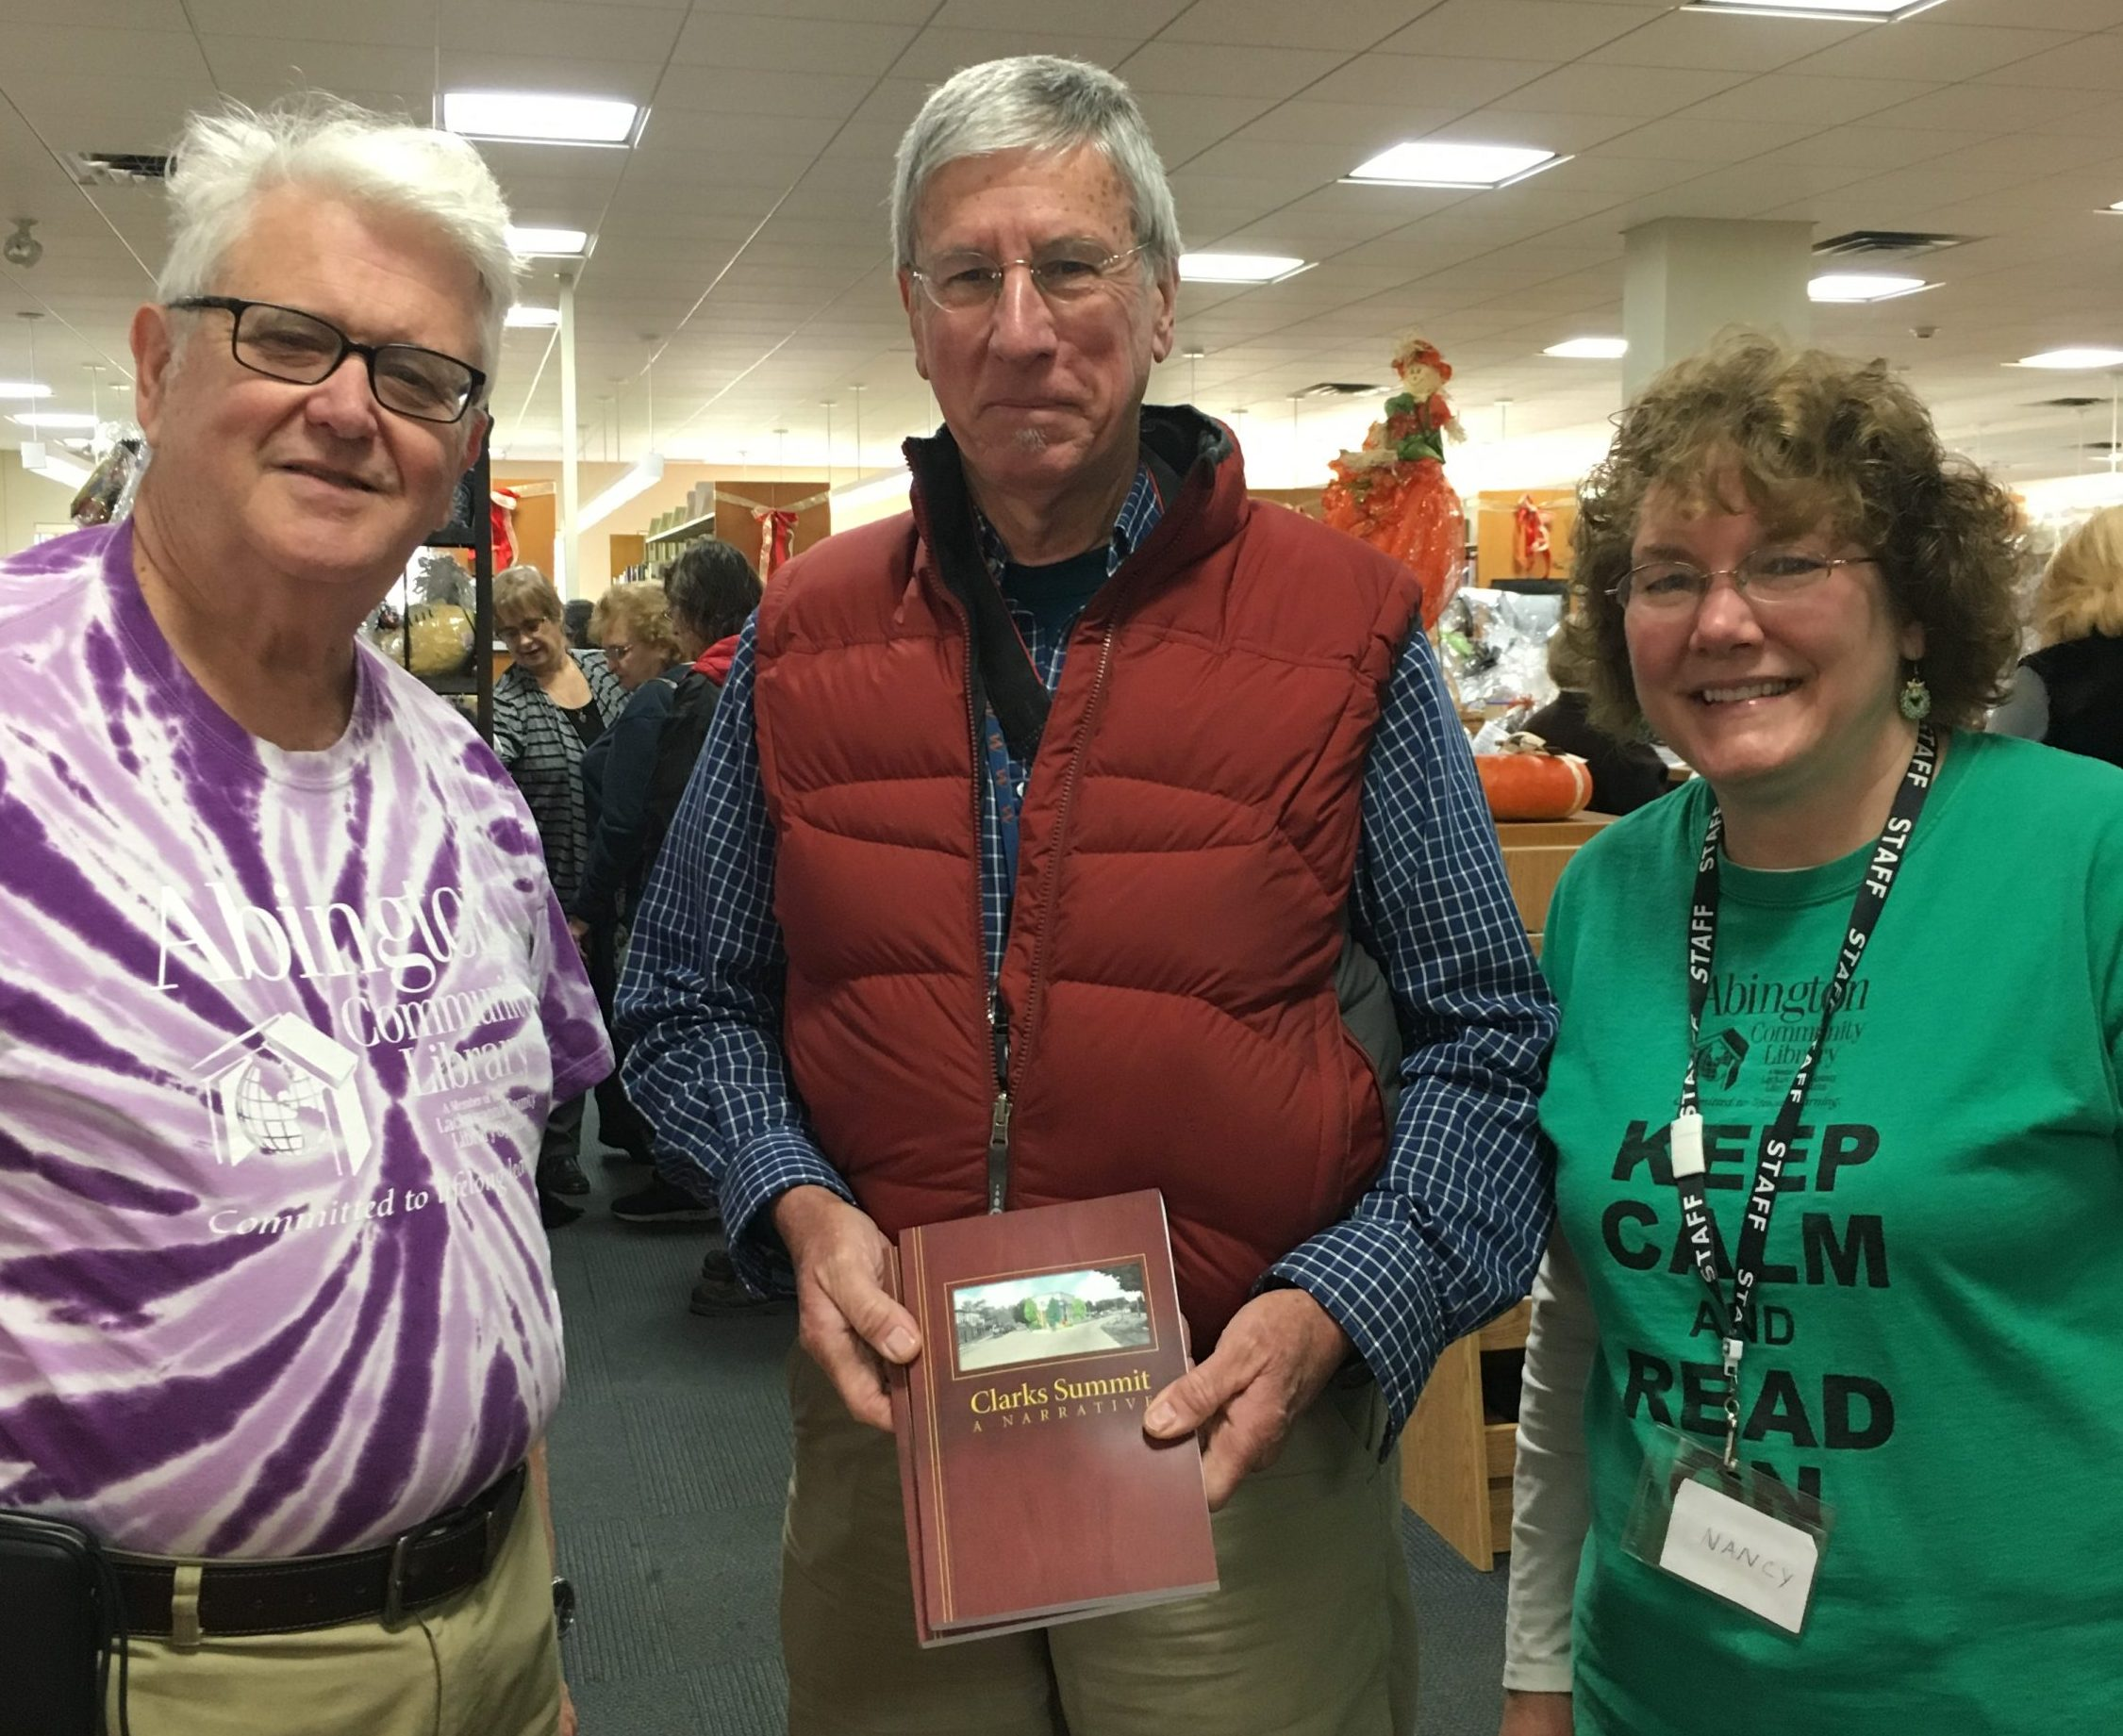 Clarks Summit: A Narrative Now Available @ the Library